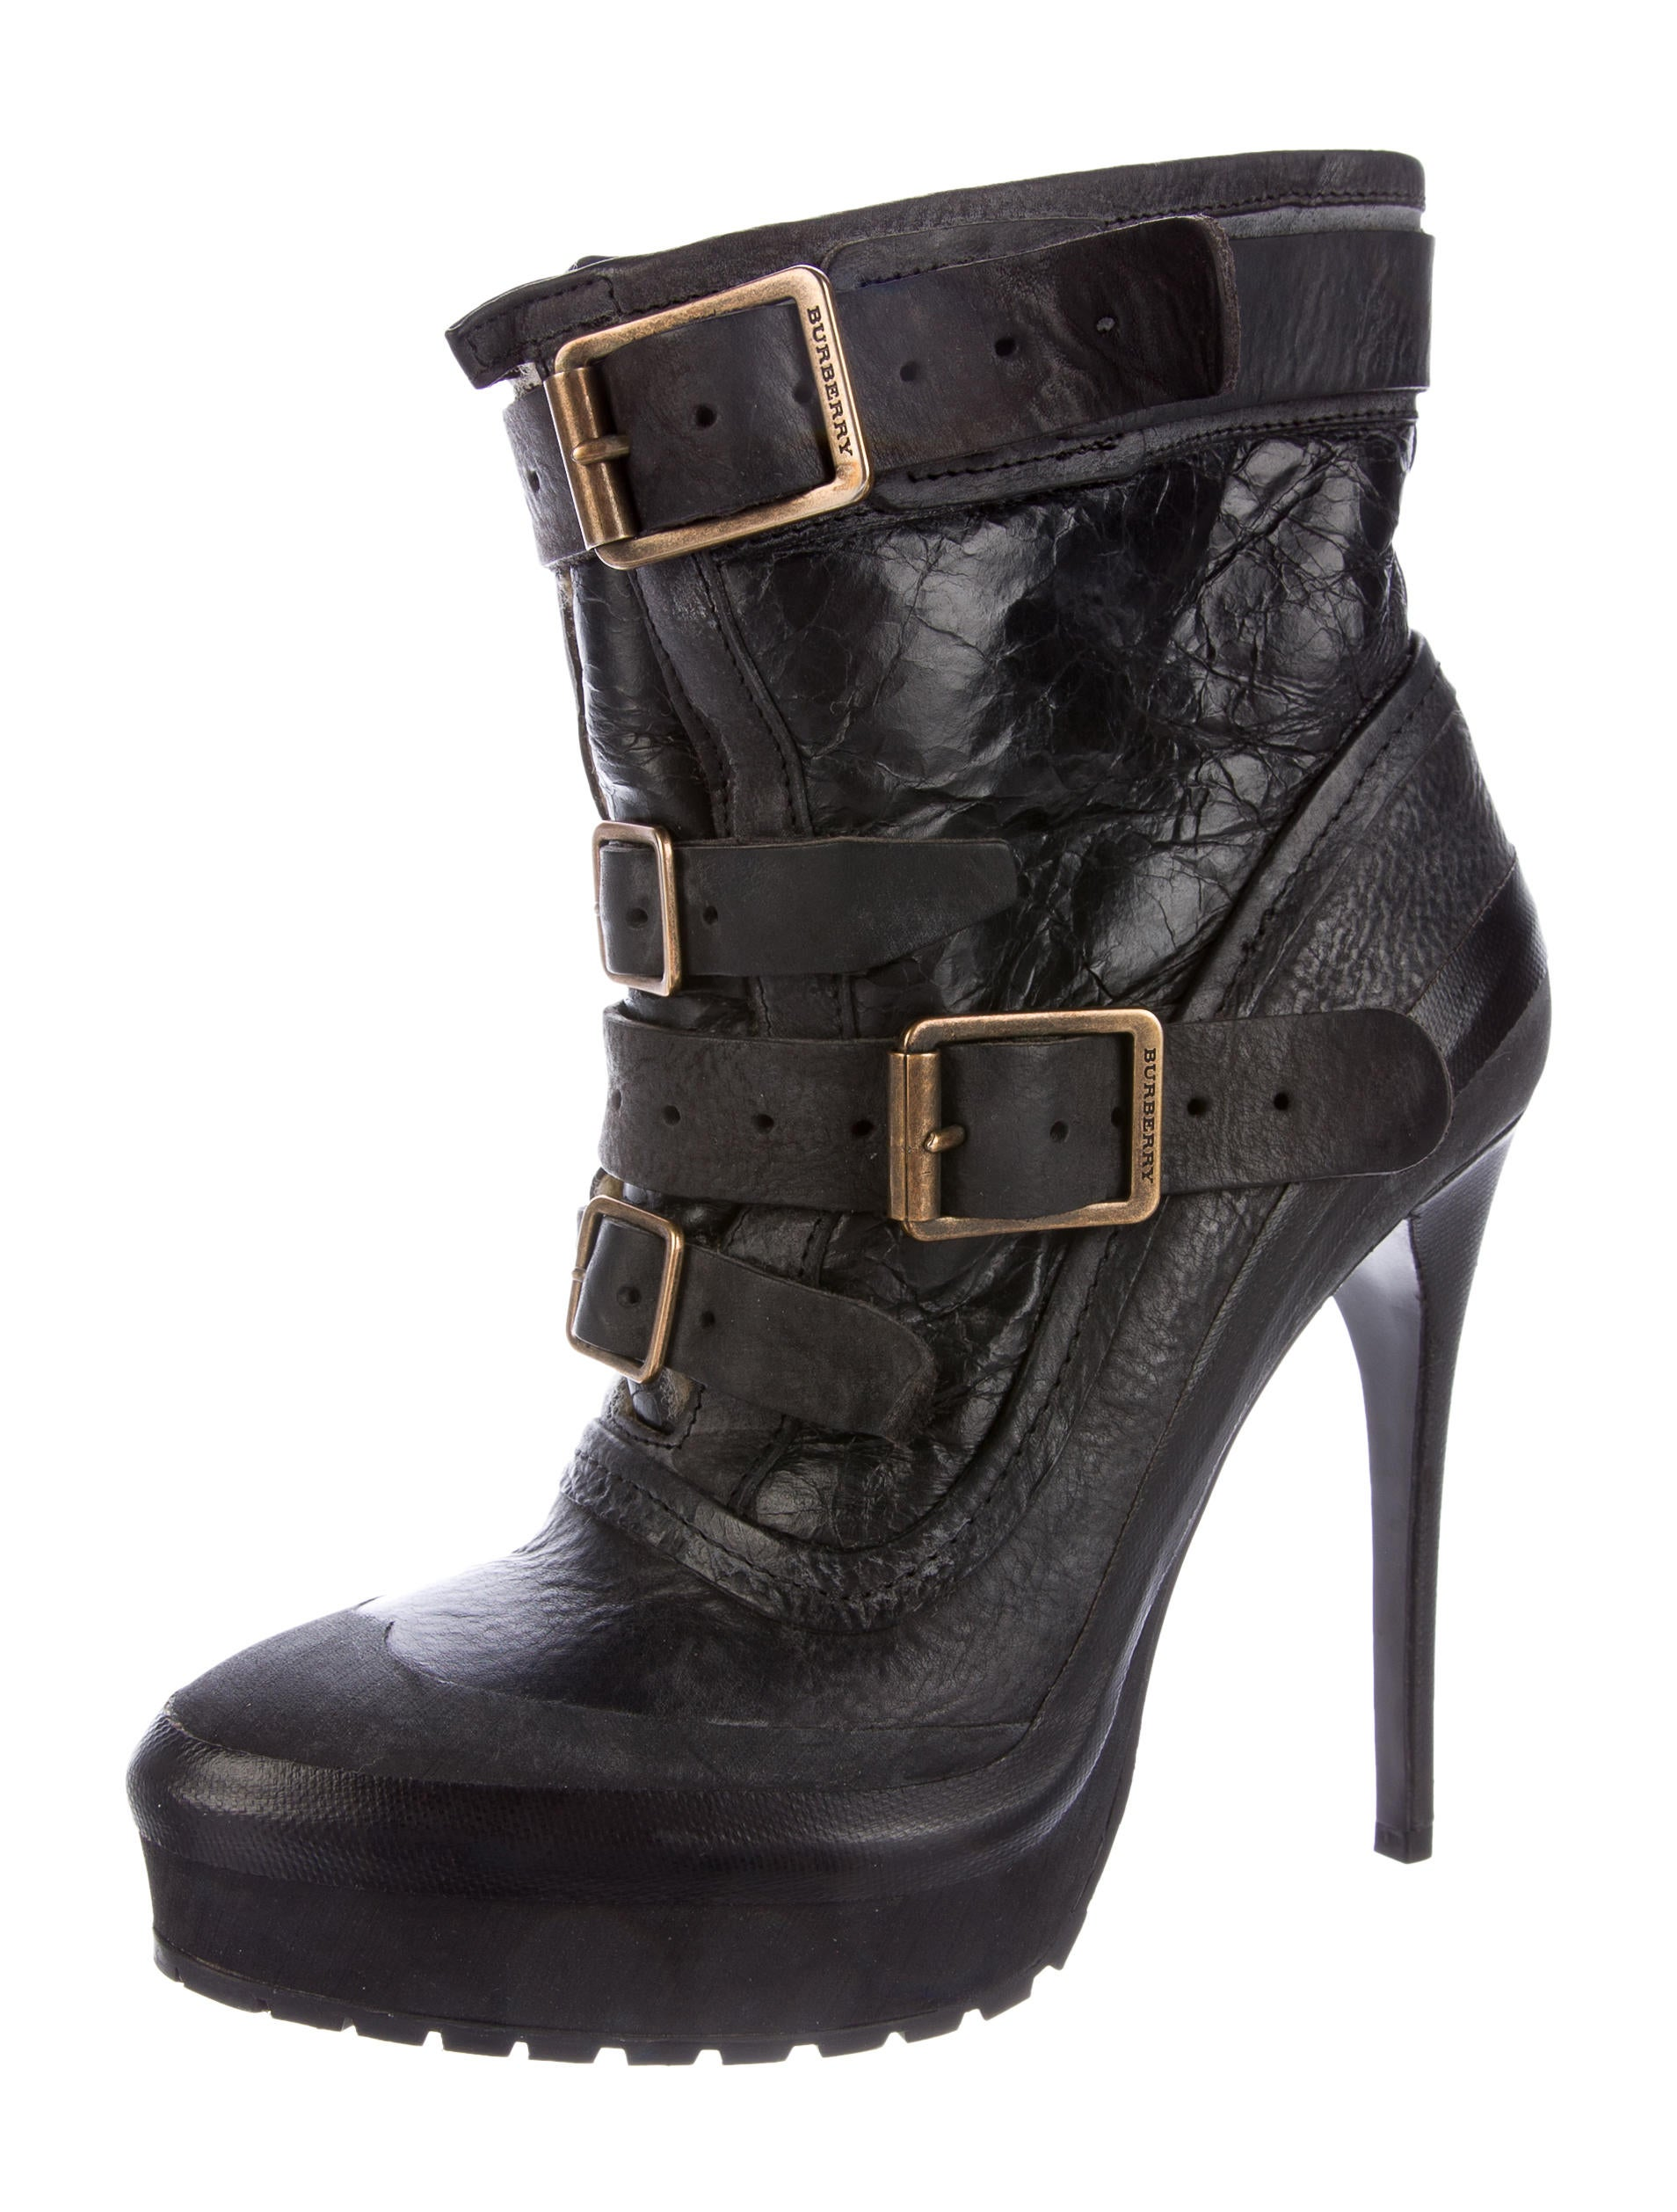 burberry shearling trimmed leather ankle boots shoes